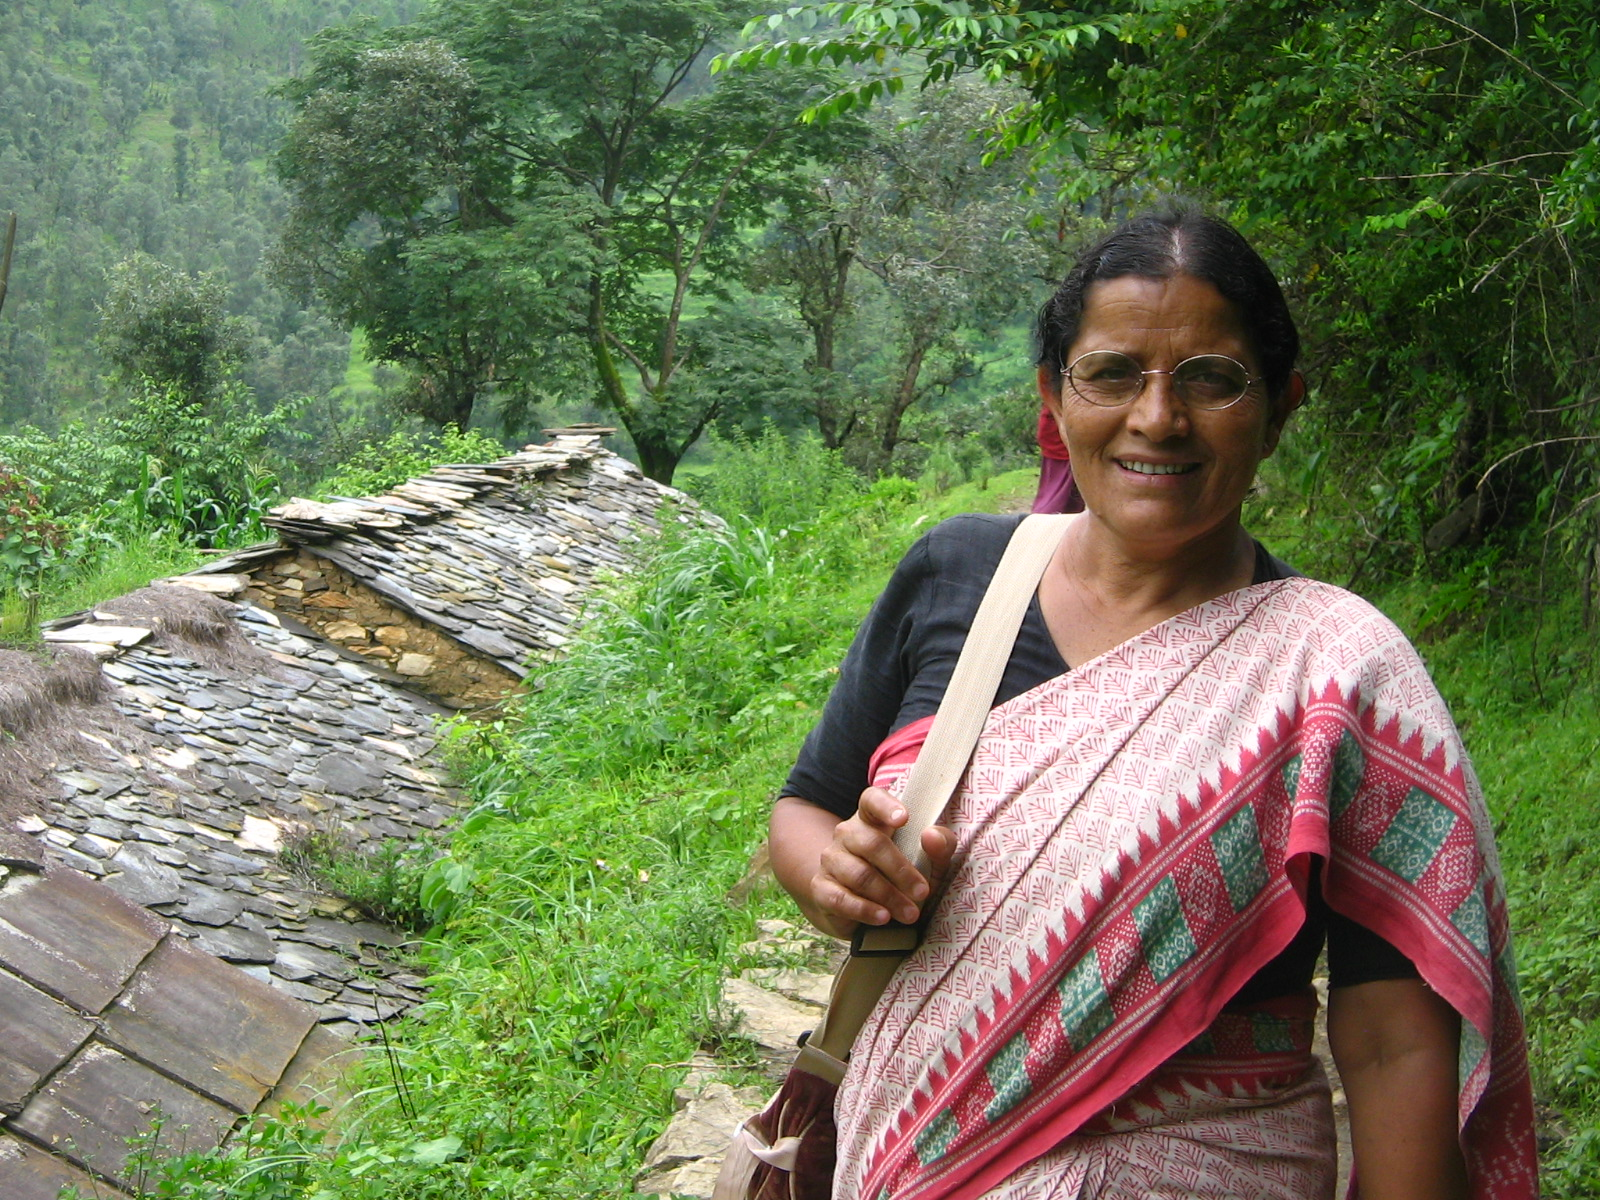 TBI Heroes: Basanti and the Kosi – How one woman revitalized a watershed